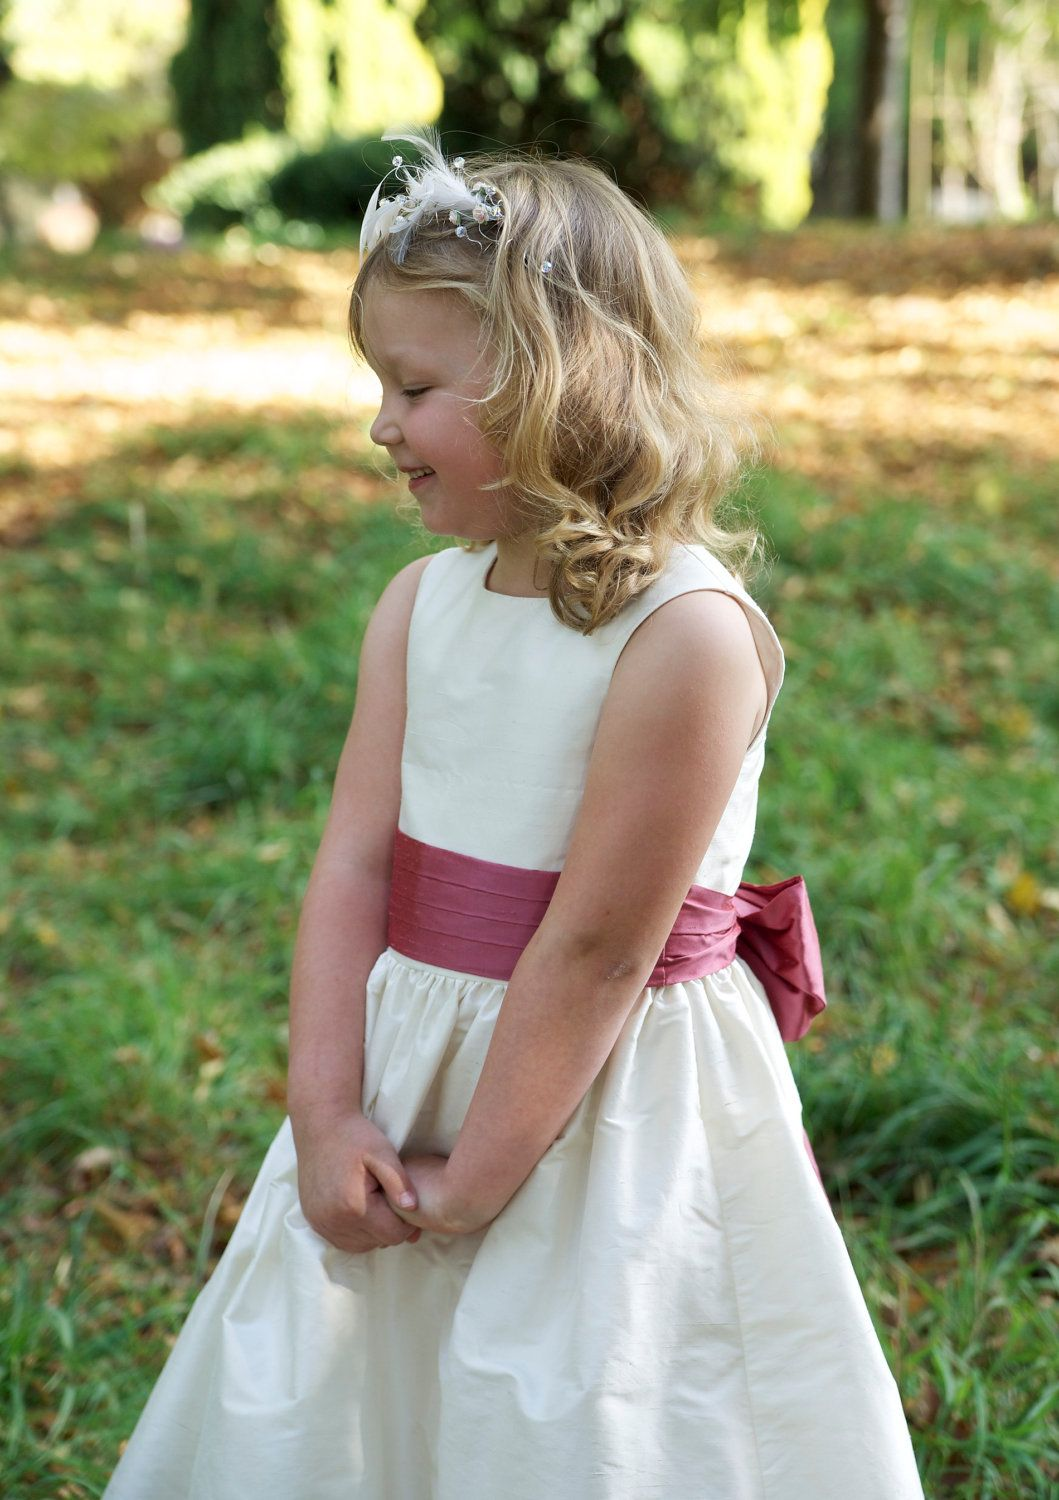 e034023a792d Flower Girl Dress pattern with free you tube on line tutorials